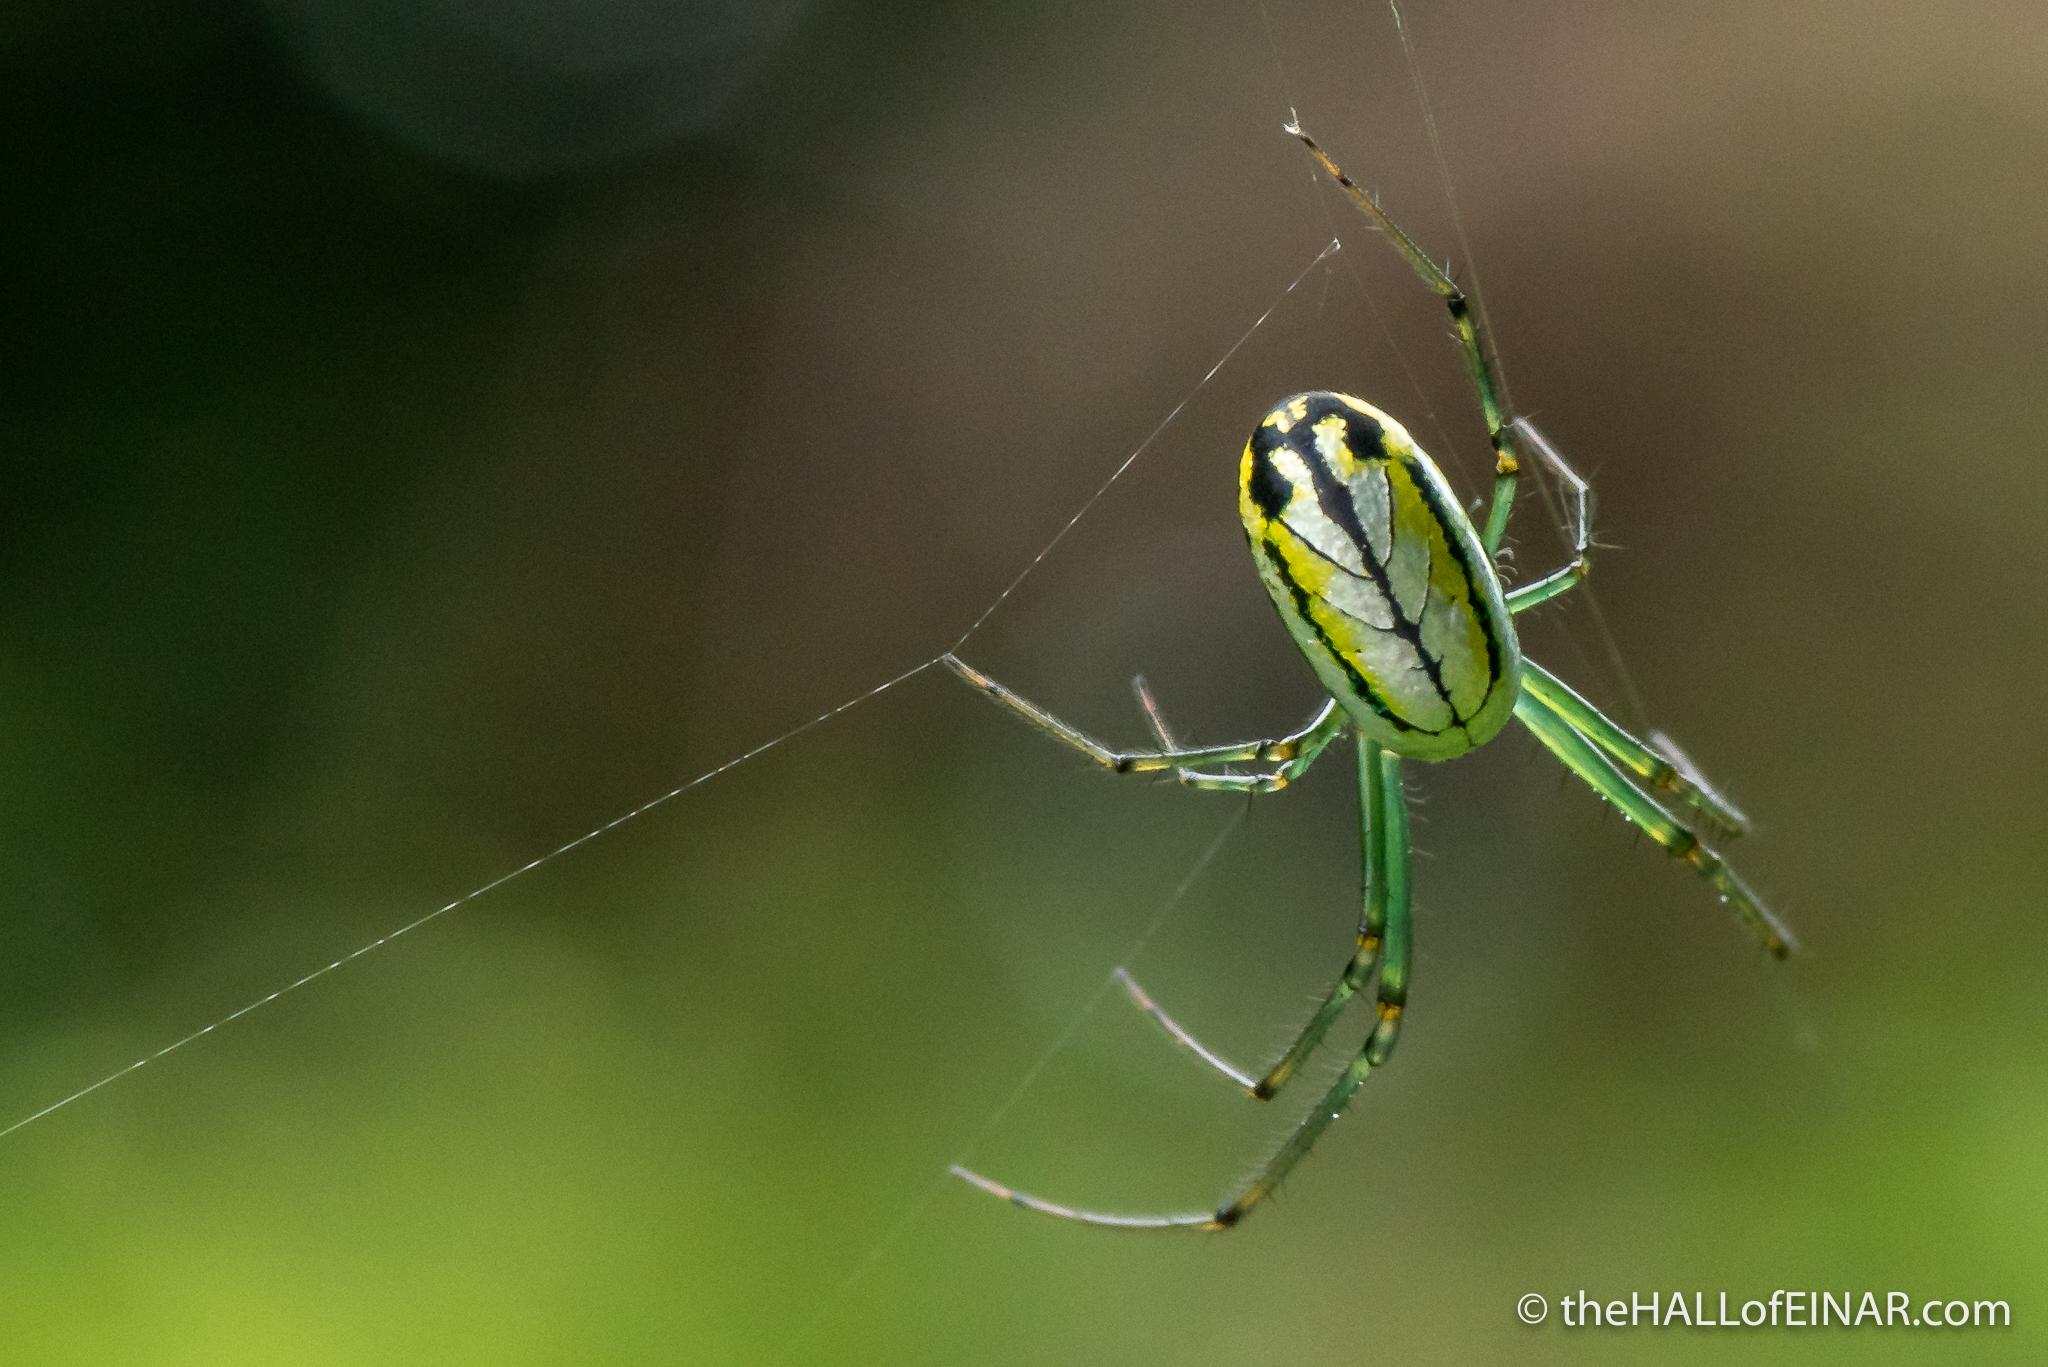 Leucauge venusta, Orchard Orb-Weaver - The Hall of Einar - photograph (c) David Bailey (not the)